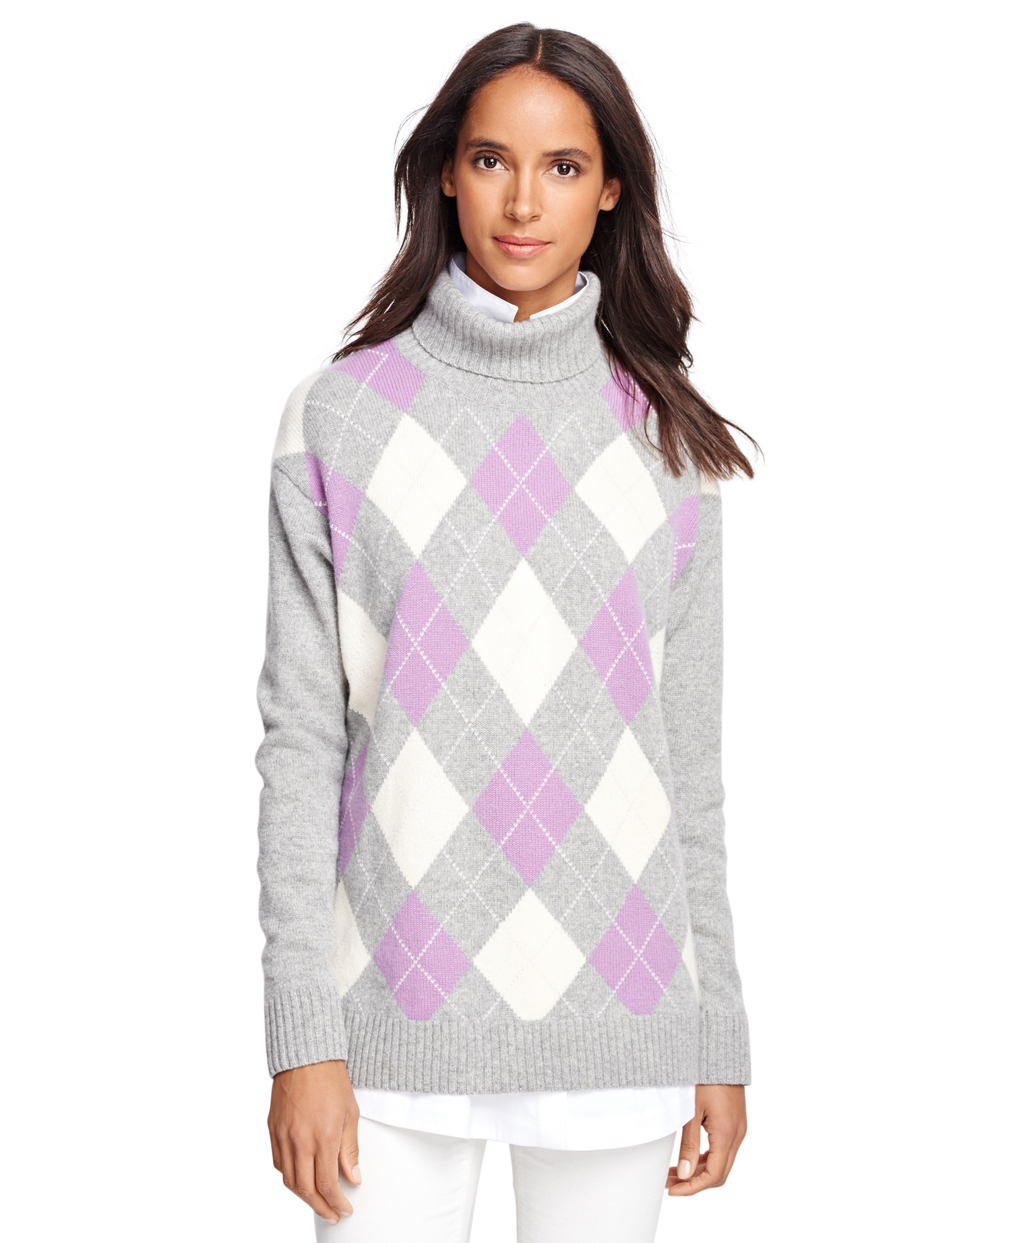 Find great deals on eBay for Womens Argyle Sweater in Women's Clothing and Sweaters. Shop with confidence.